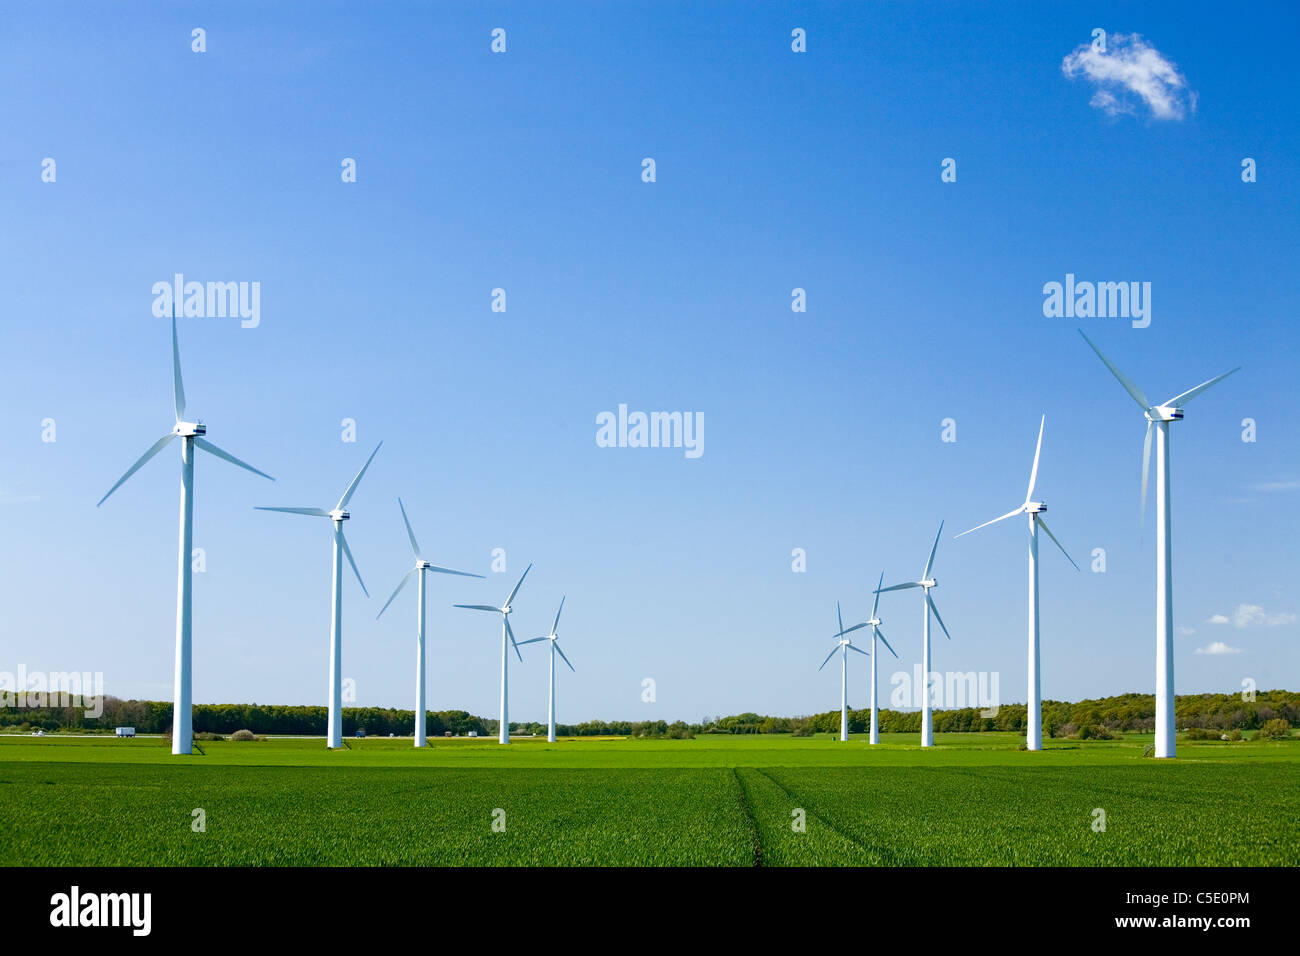 Group of wind turbines at peaceful fields against blue sky - Stock Image